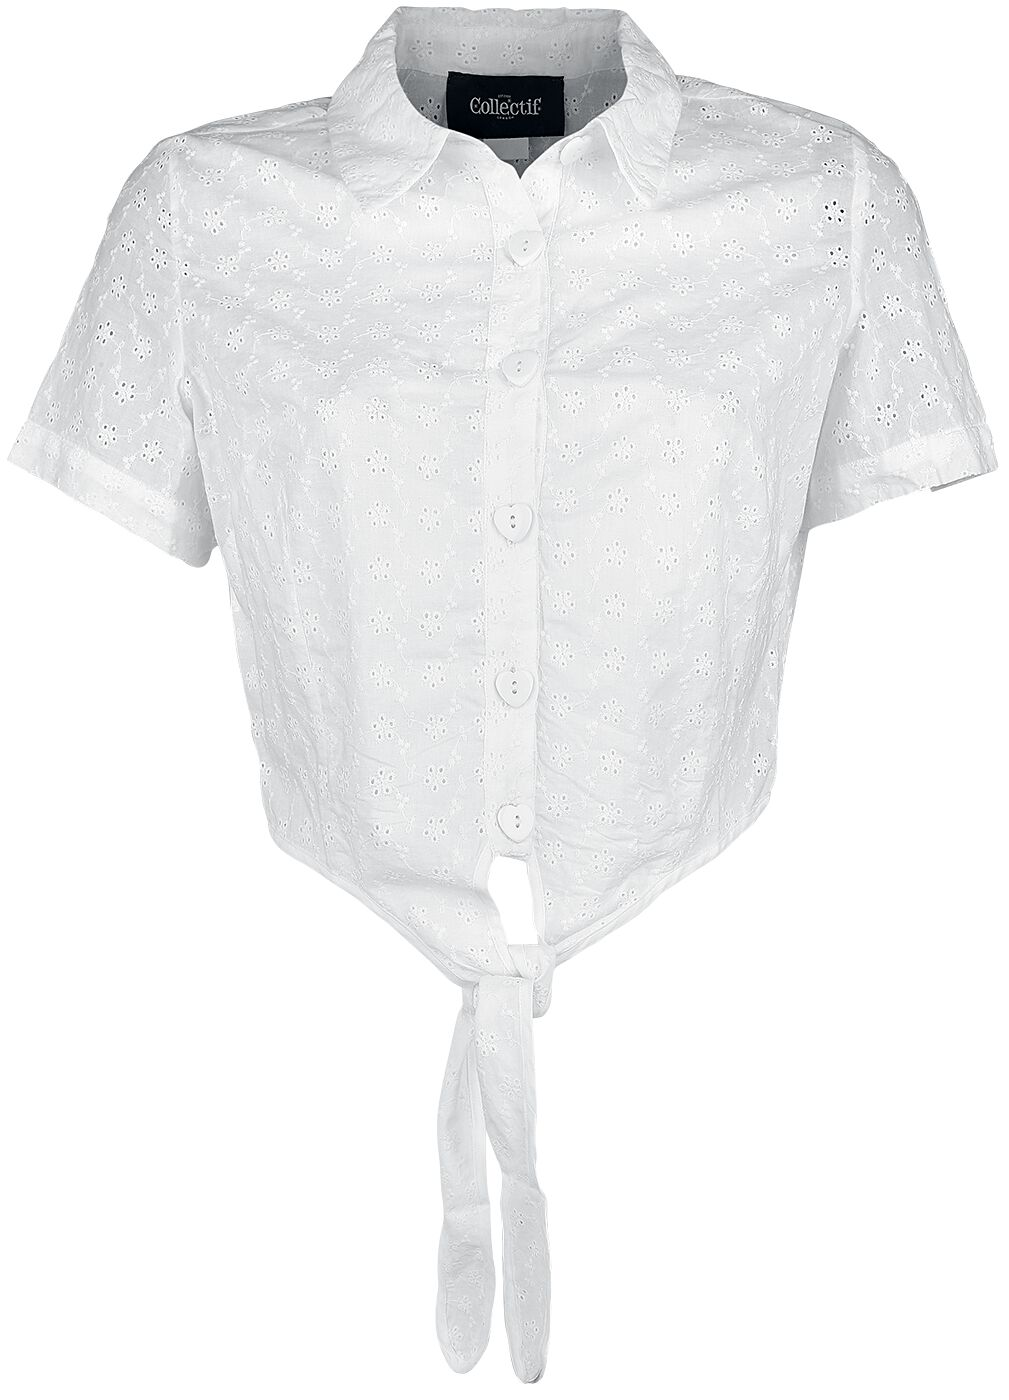 Image of Collectif Clothing Sammy Broderie Anglaise Tie Blouse Bluse weiß